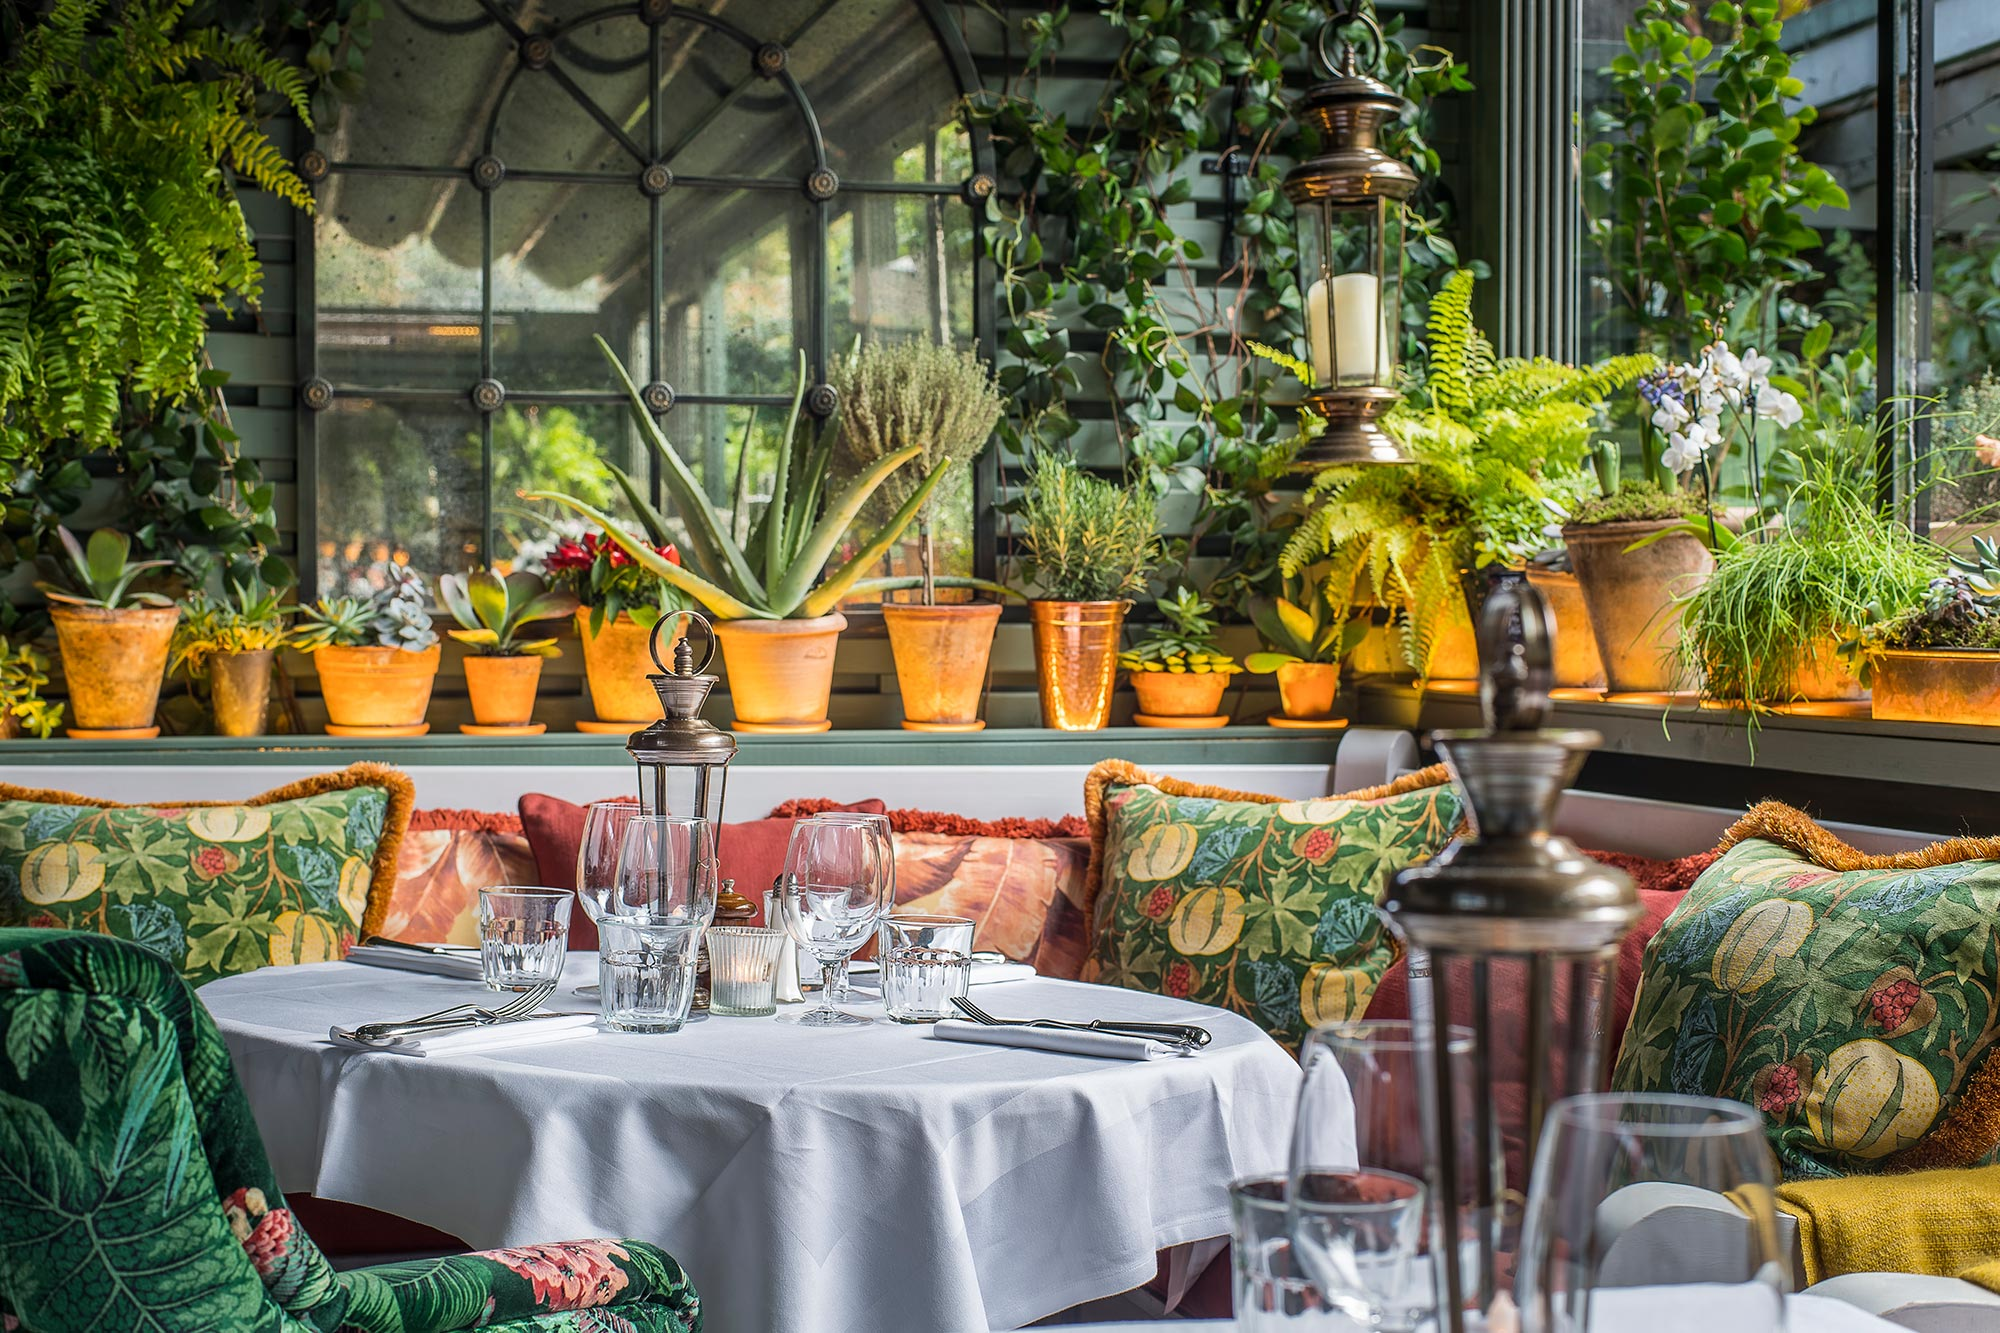 The Ivy Chelsea Garden Winter Terrace 1 10 RISTORANTI NEL MONDO